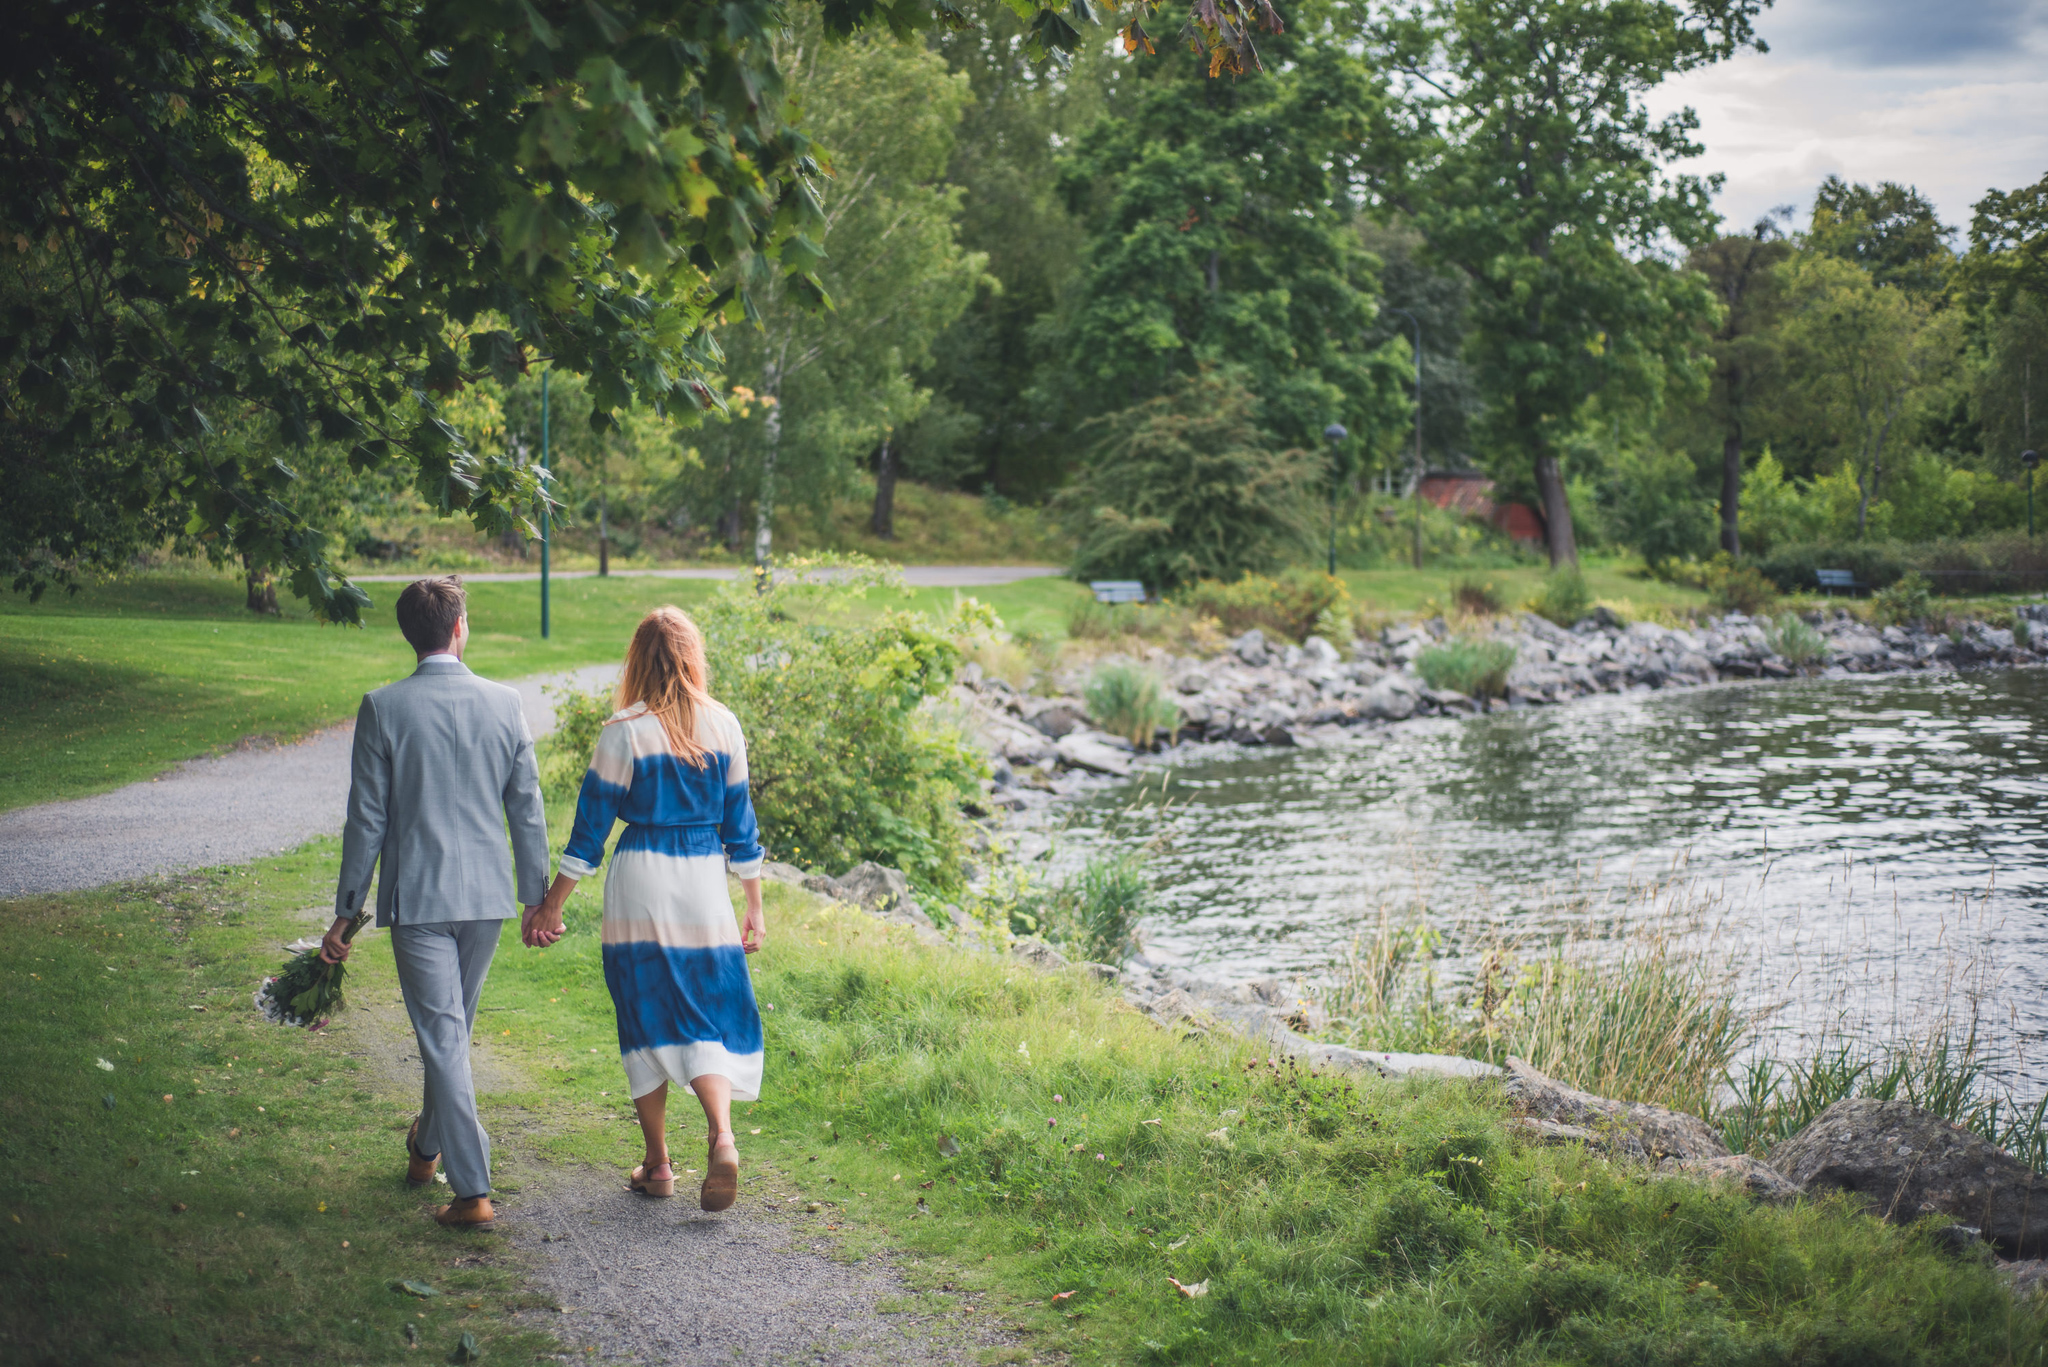 elopement wedding at djurgarden in stockholm